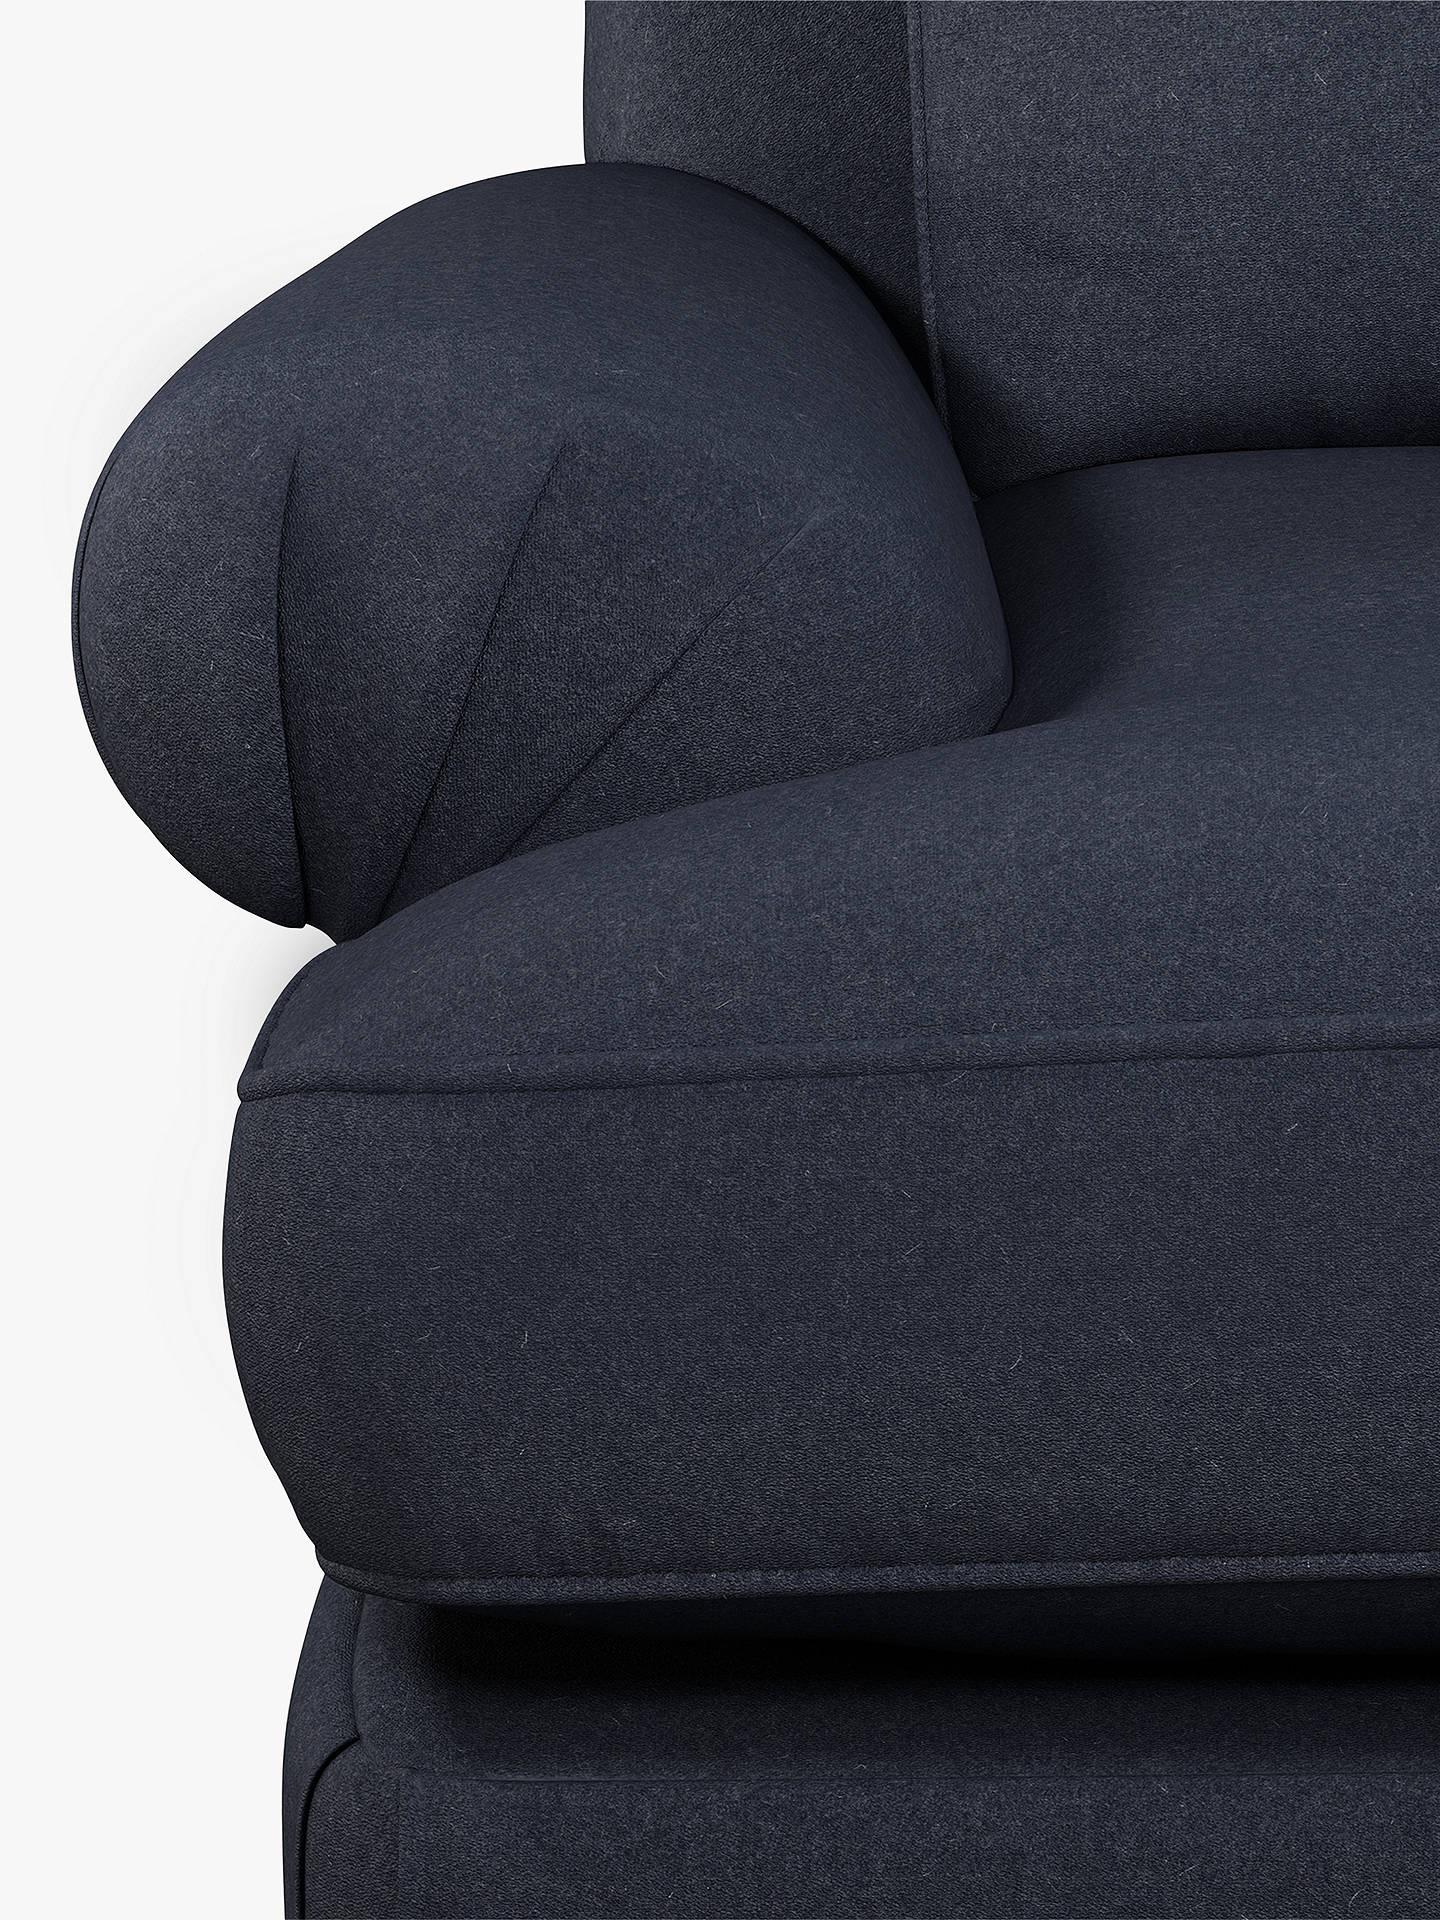 Buy Croft Collection Findon Armchair, Oak Leg, Ruskin Navy Online at johnlewis.com